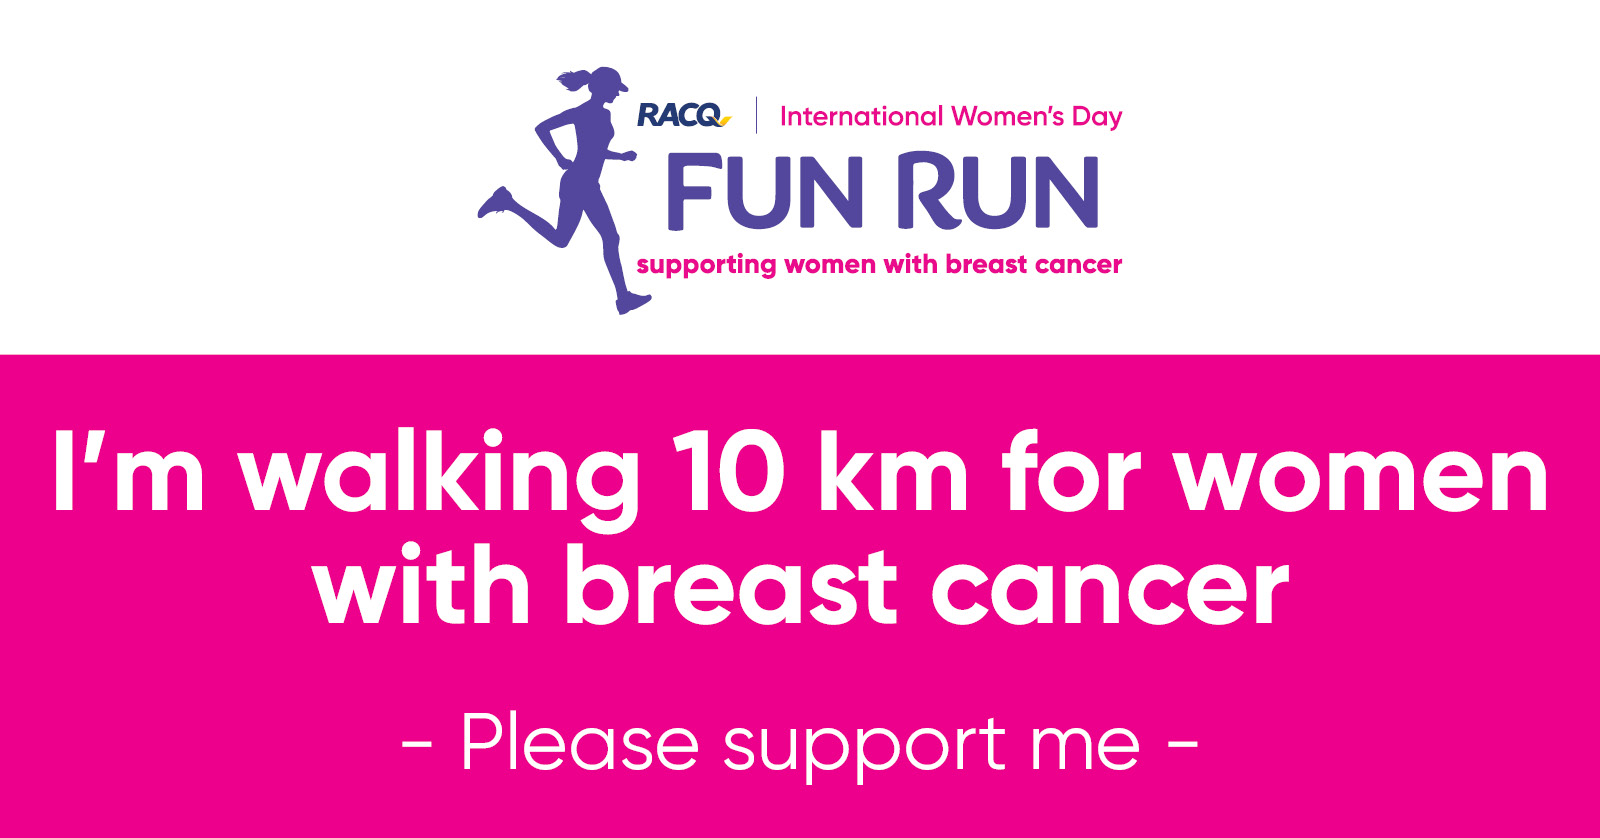 Facebook - I'm walking 10 km - please support